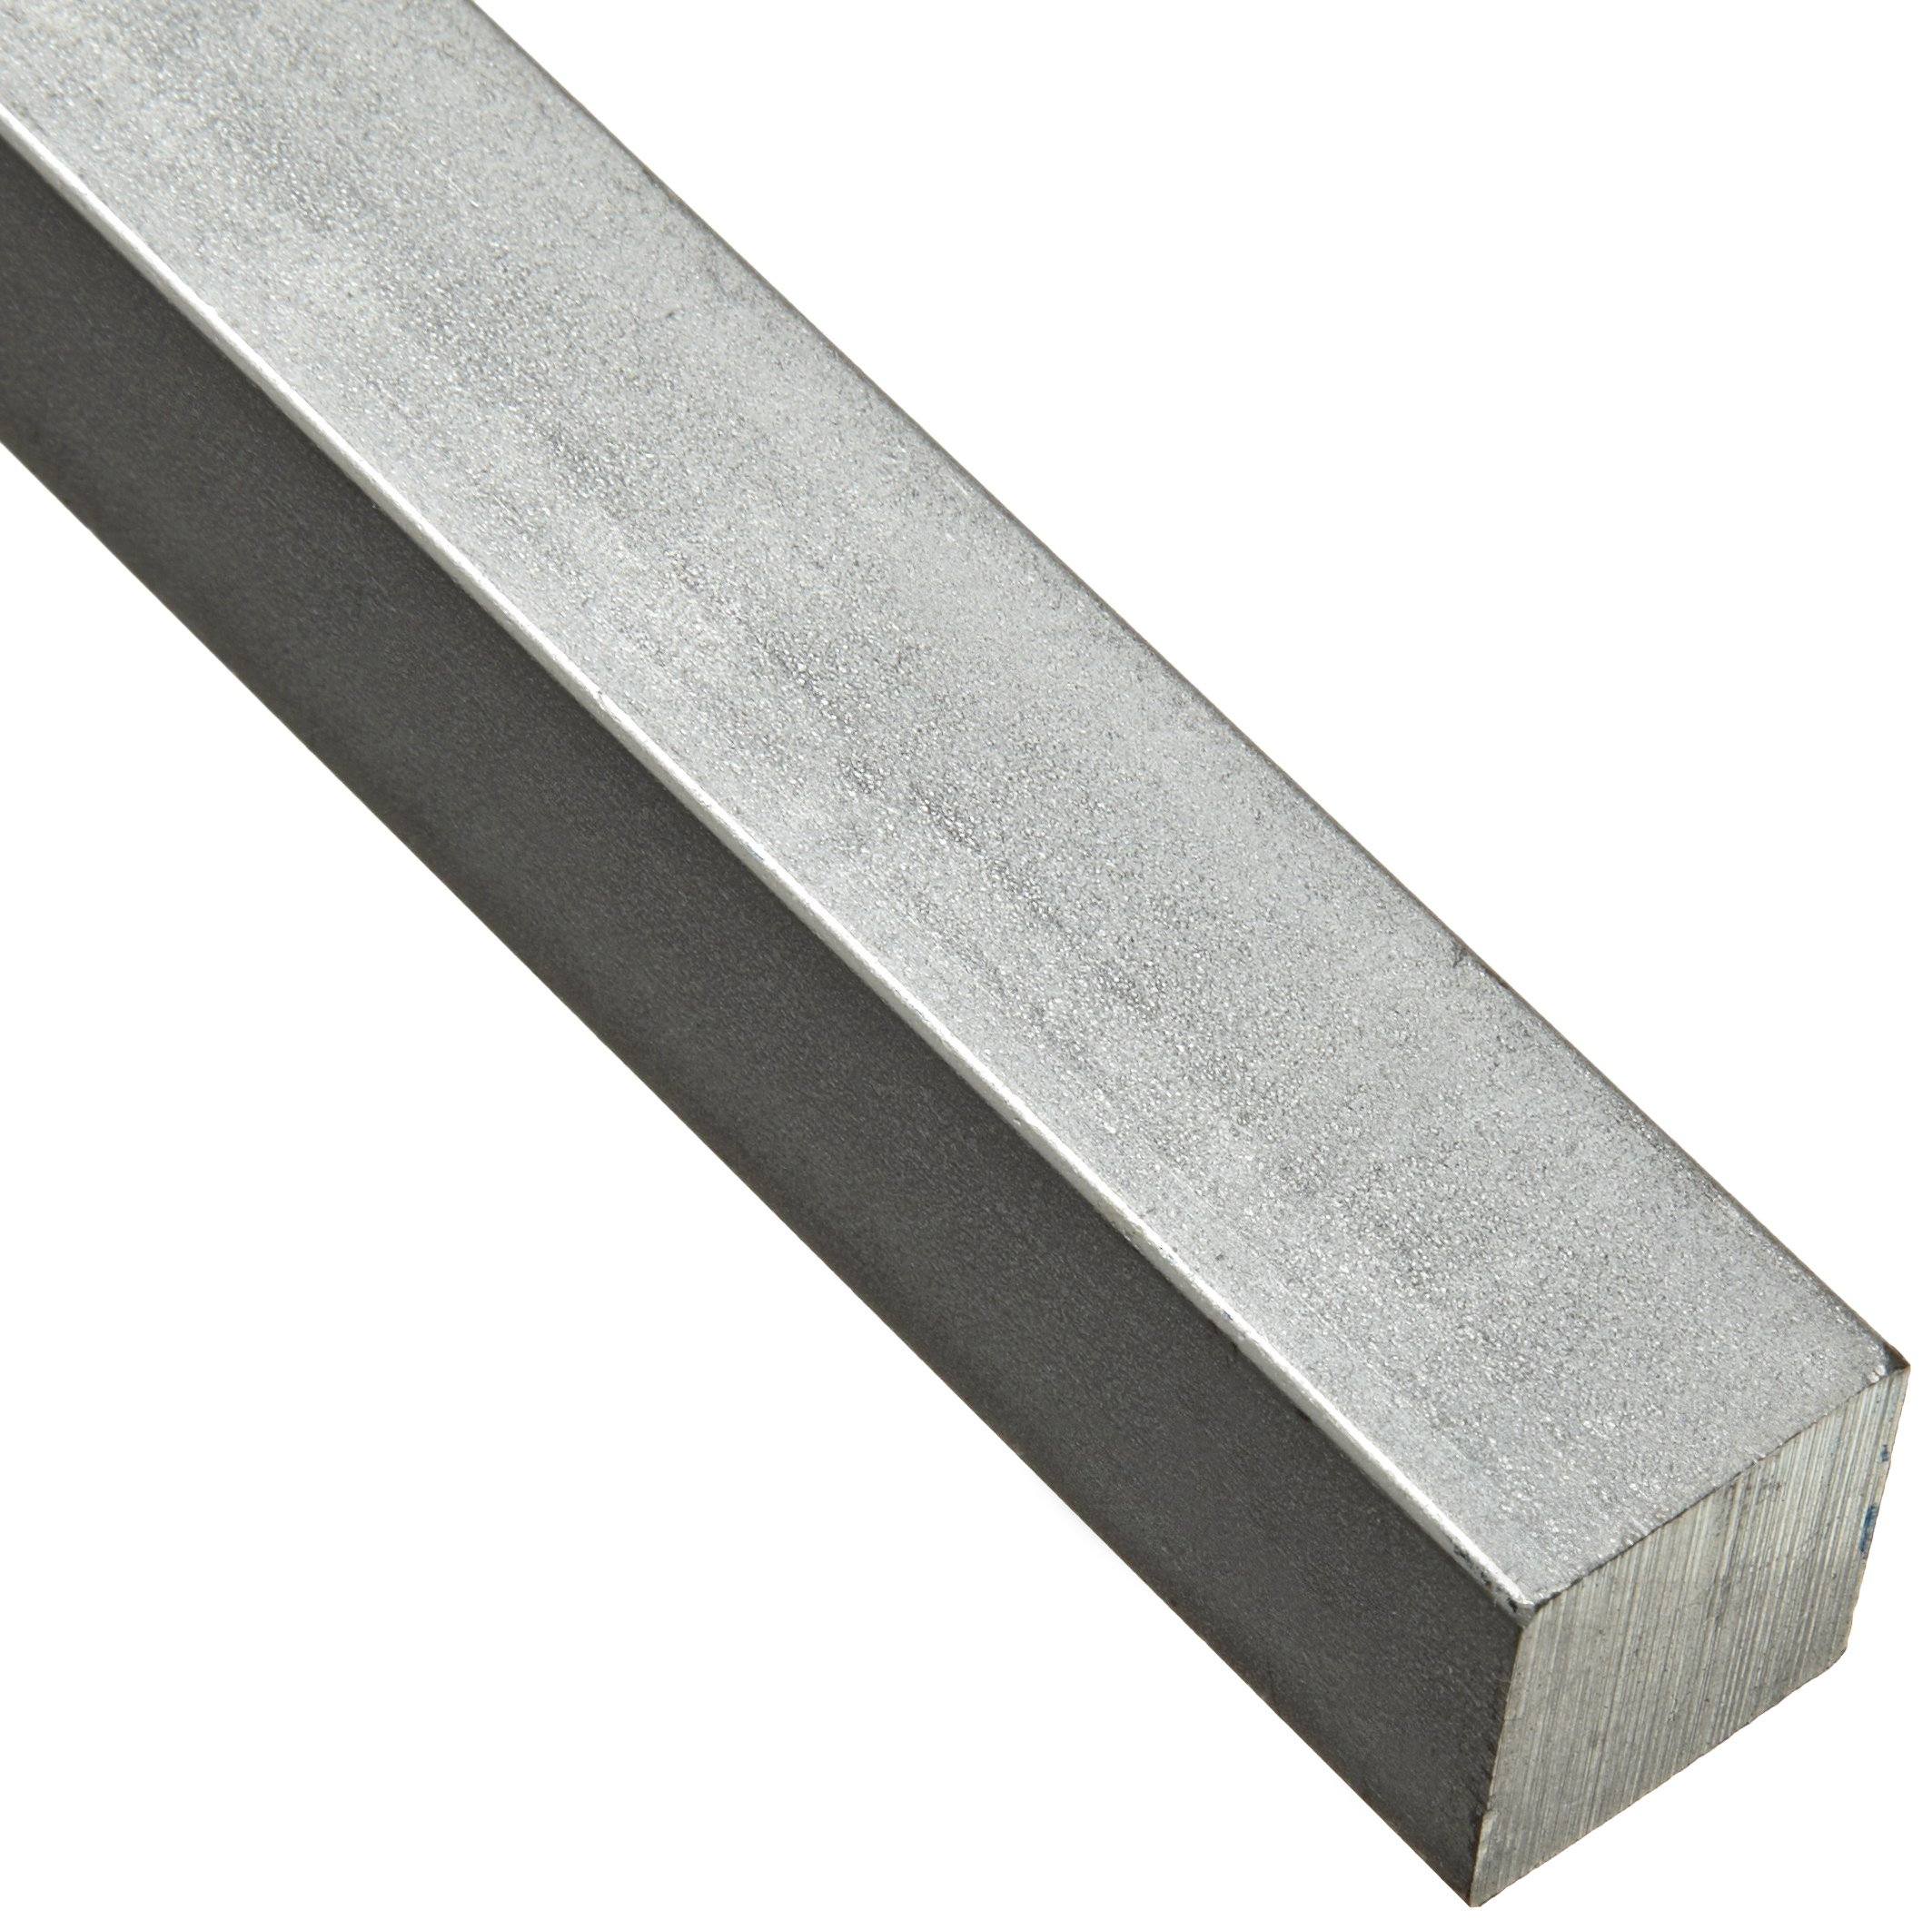 Steel Key Stock, Zinc Plated, Oversized Tolerance, 1-3/4'' Thickness, 1-3/4'' Width, 12'' Length (Pack of 1) by Small Parts